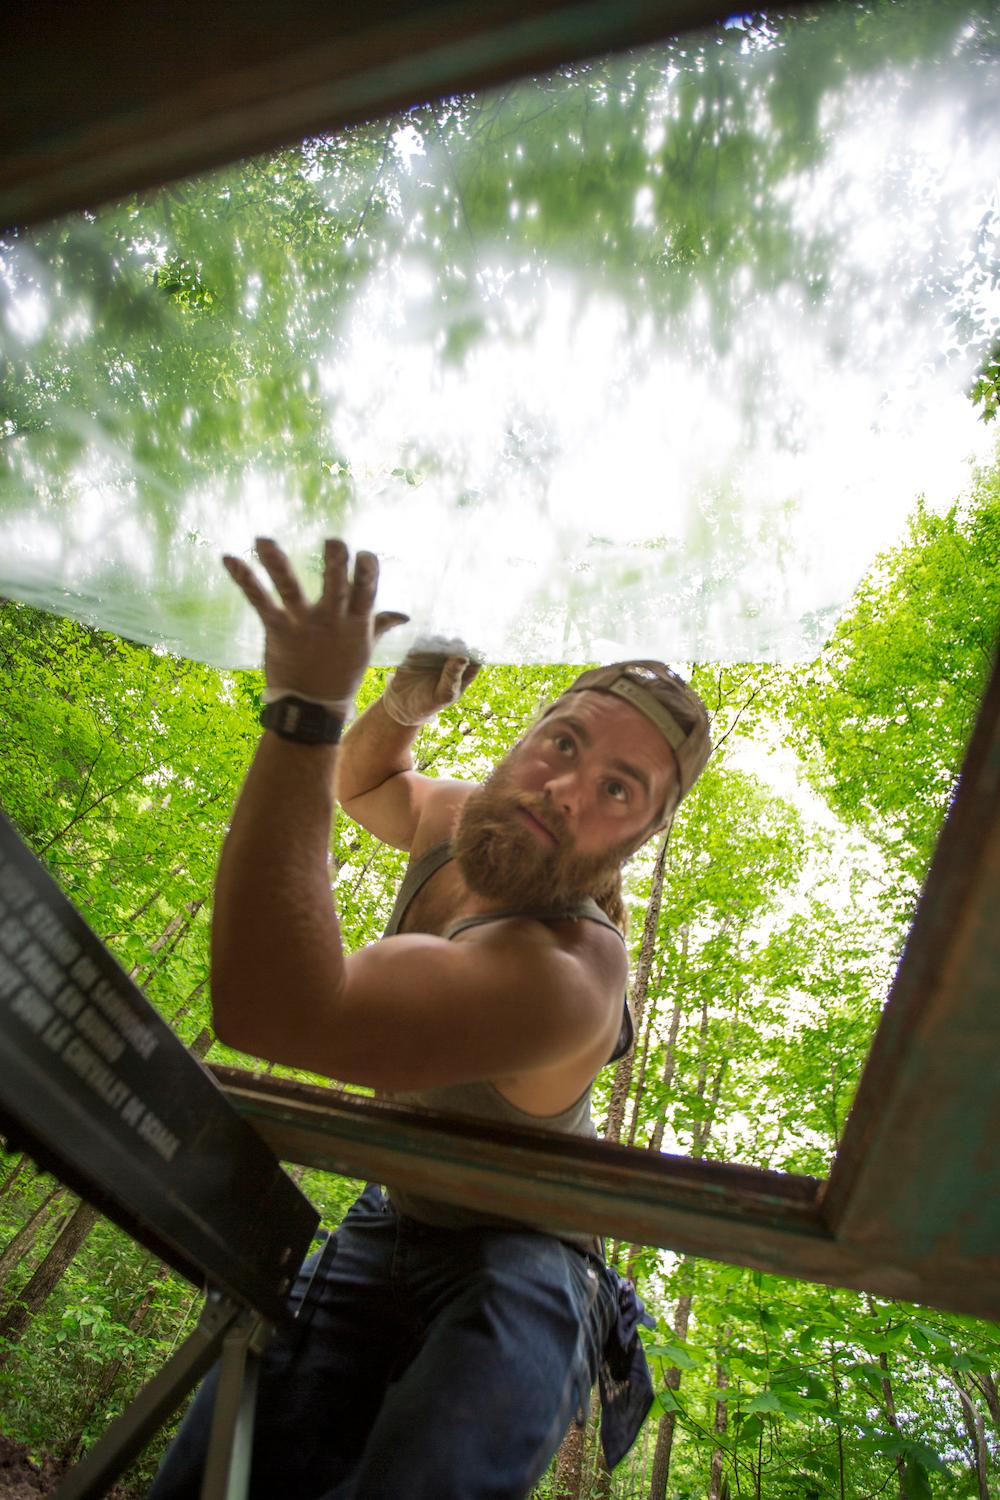 The Canopy Crew is a 10-person treehouse-building team founded by Django Kroner in 2013. They can build your dream treehouse or, if you just want to experience a night among the trees, you can rent one of the two houses they have in Red River Gorge. / Image courtesy of The Canopy Crew // Published: 3.6.17